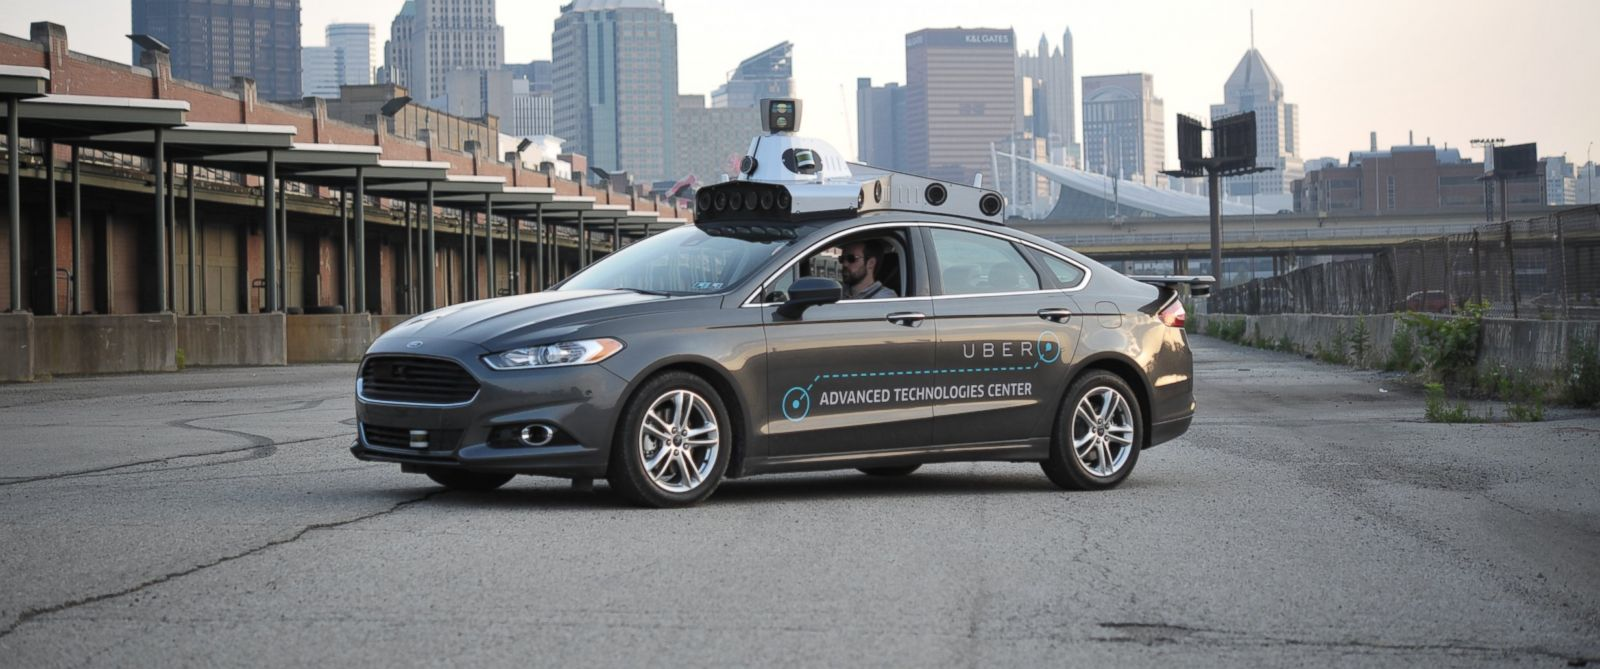 image of Uber autonomous car